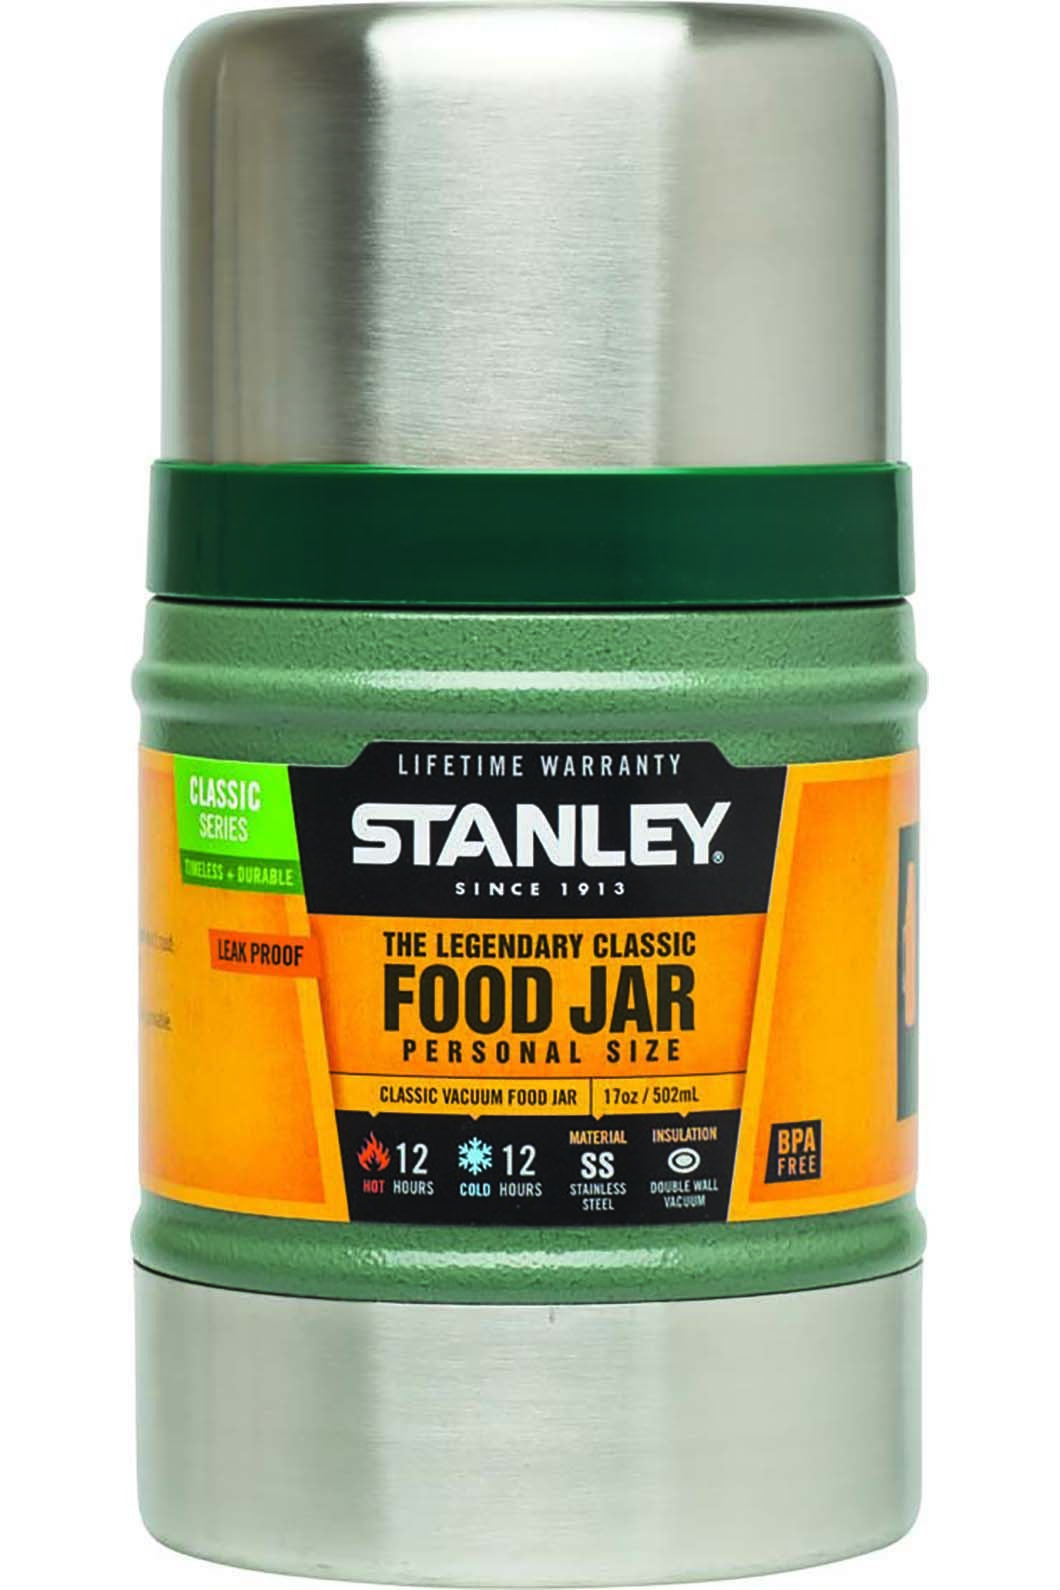 Stanley 502mL Classic Vacuum Food Jar, None, hi-res